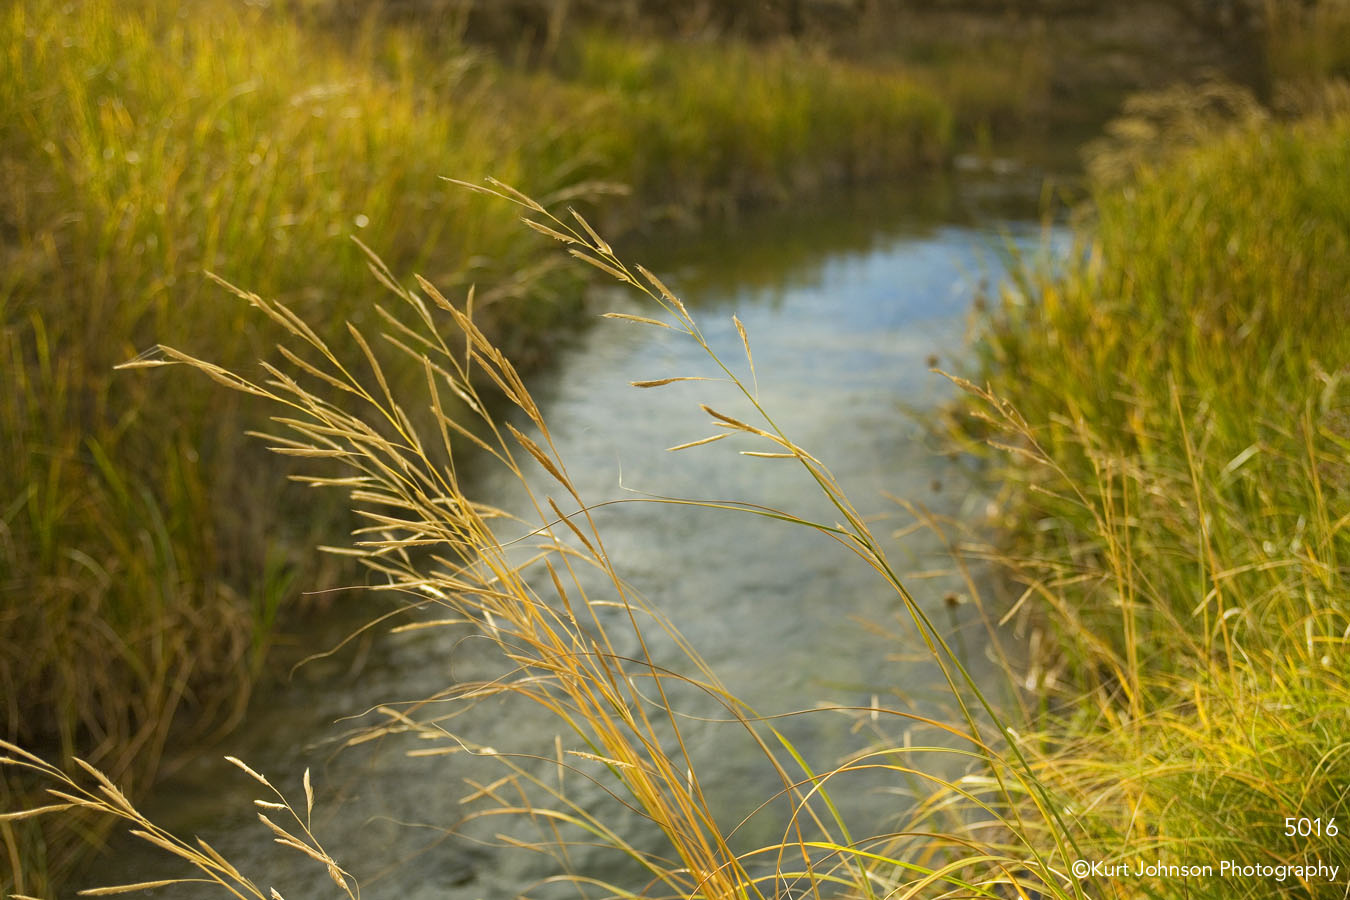 landscape stream grasses water yellow gold